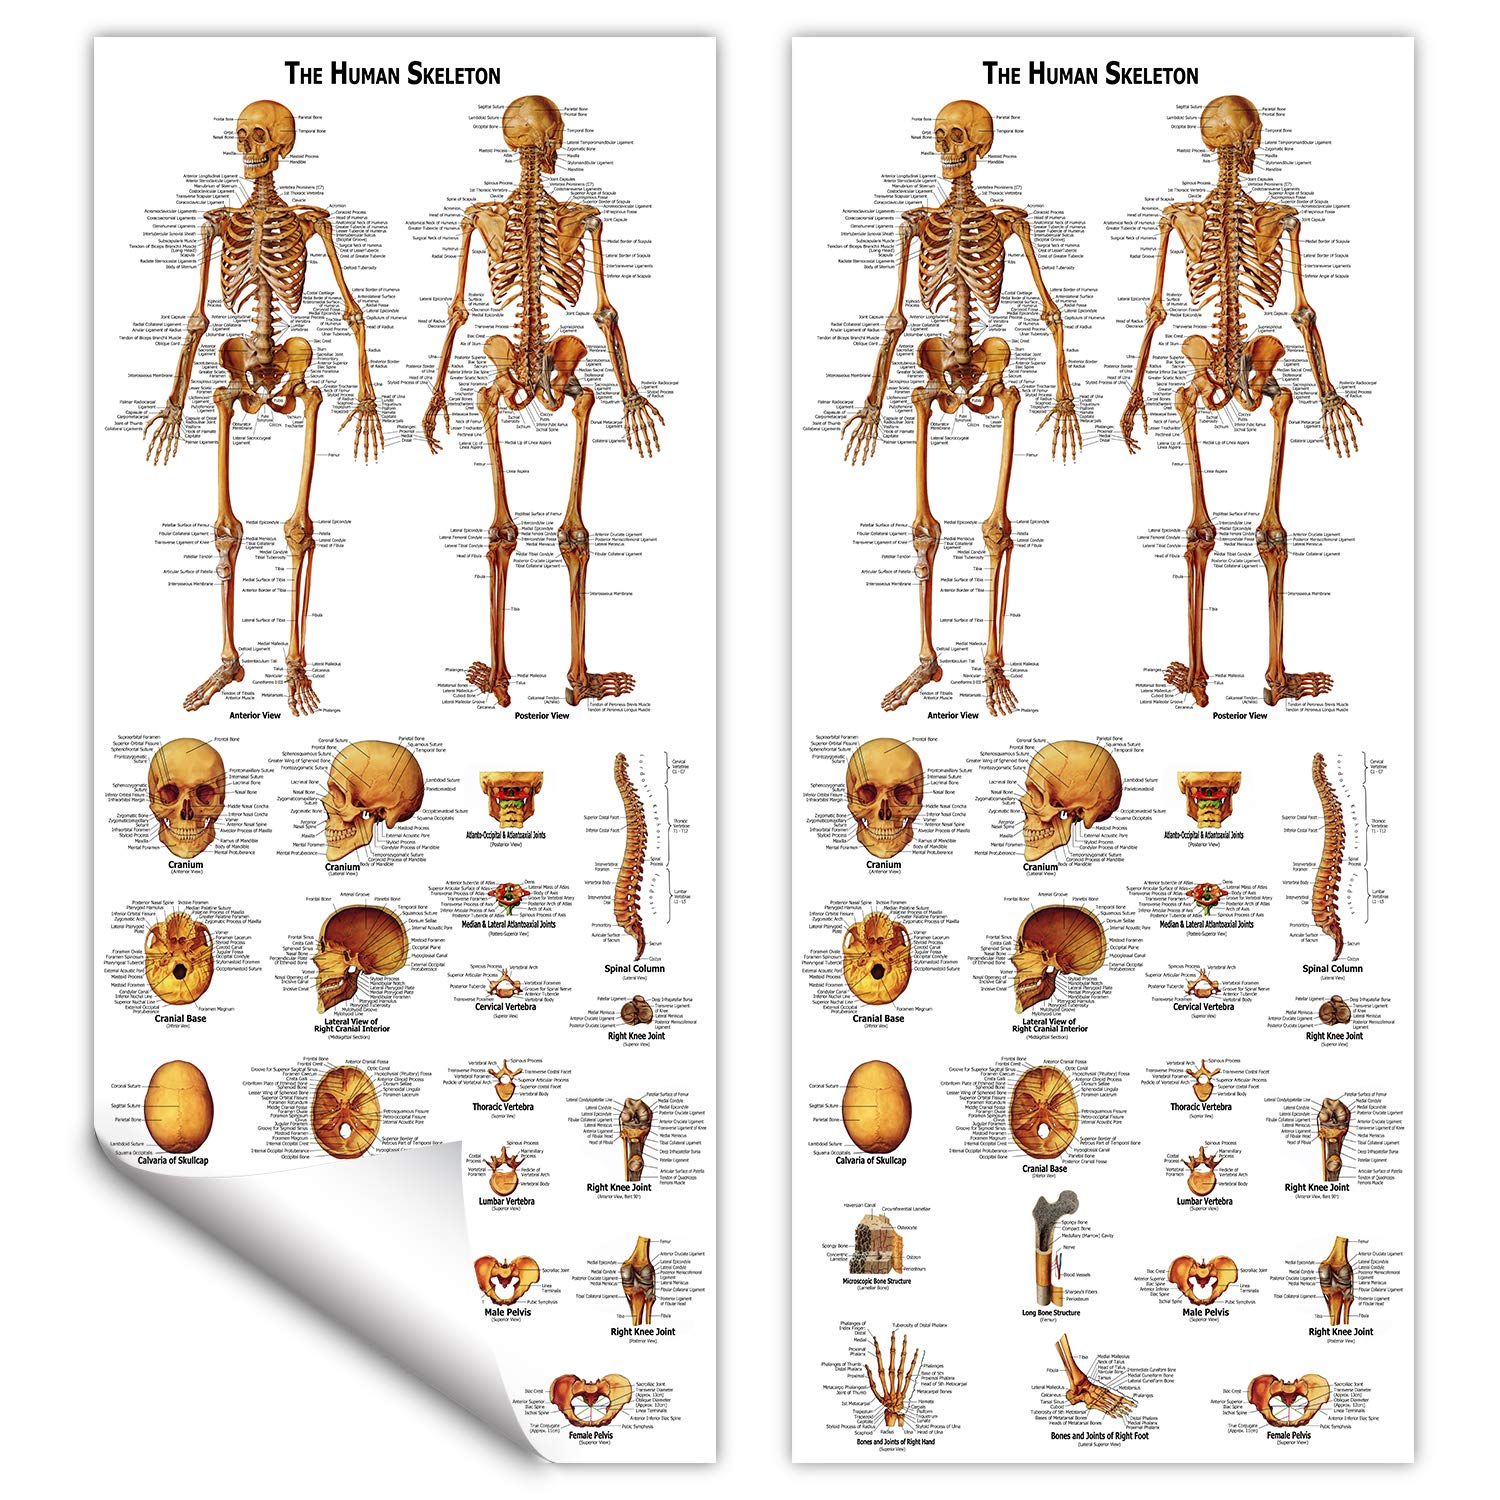 Poster Size 20 Width x 26 Height 3B Scientific VR2514L Glossy UV Resistant Laminated Paper Appareil Urinaire The Urinary Tract Anatomy and Physiology Chart, French Anatomie Et Physiologie Anatomical